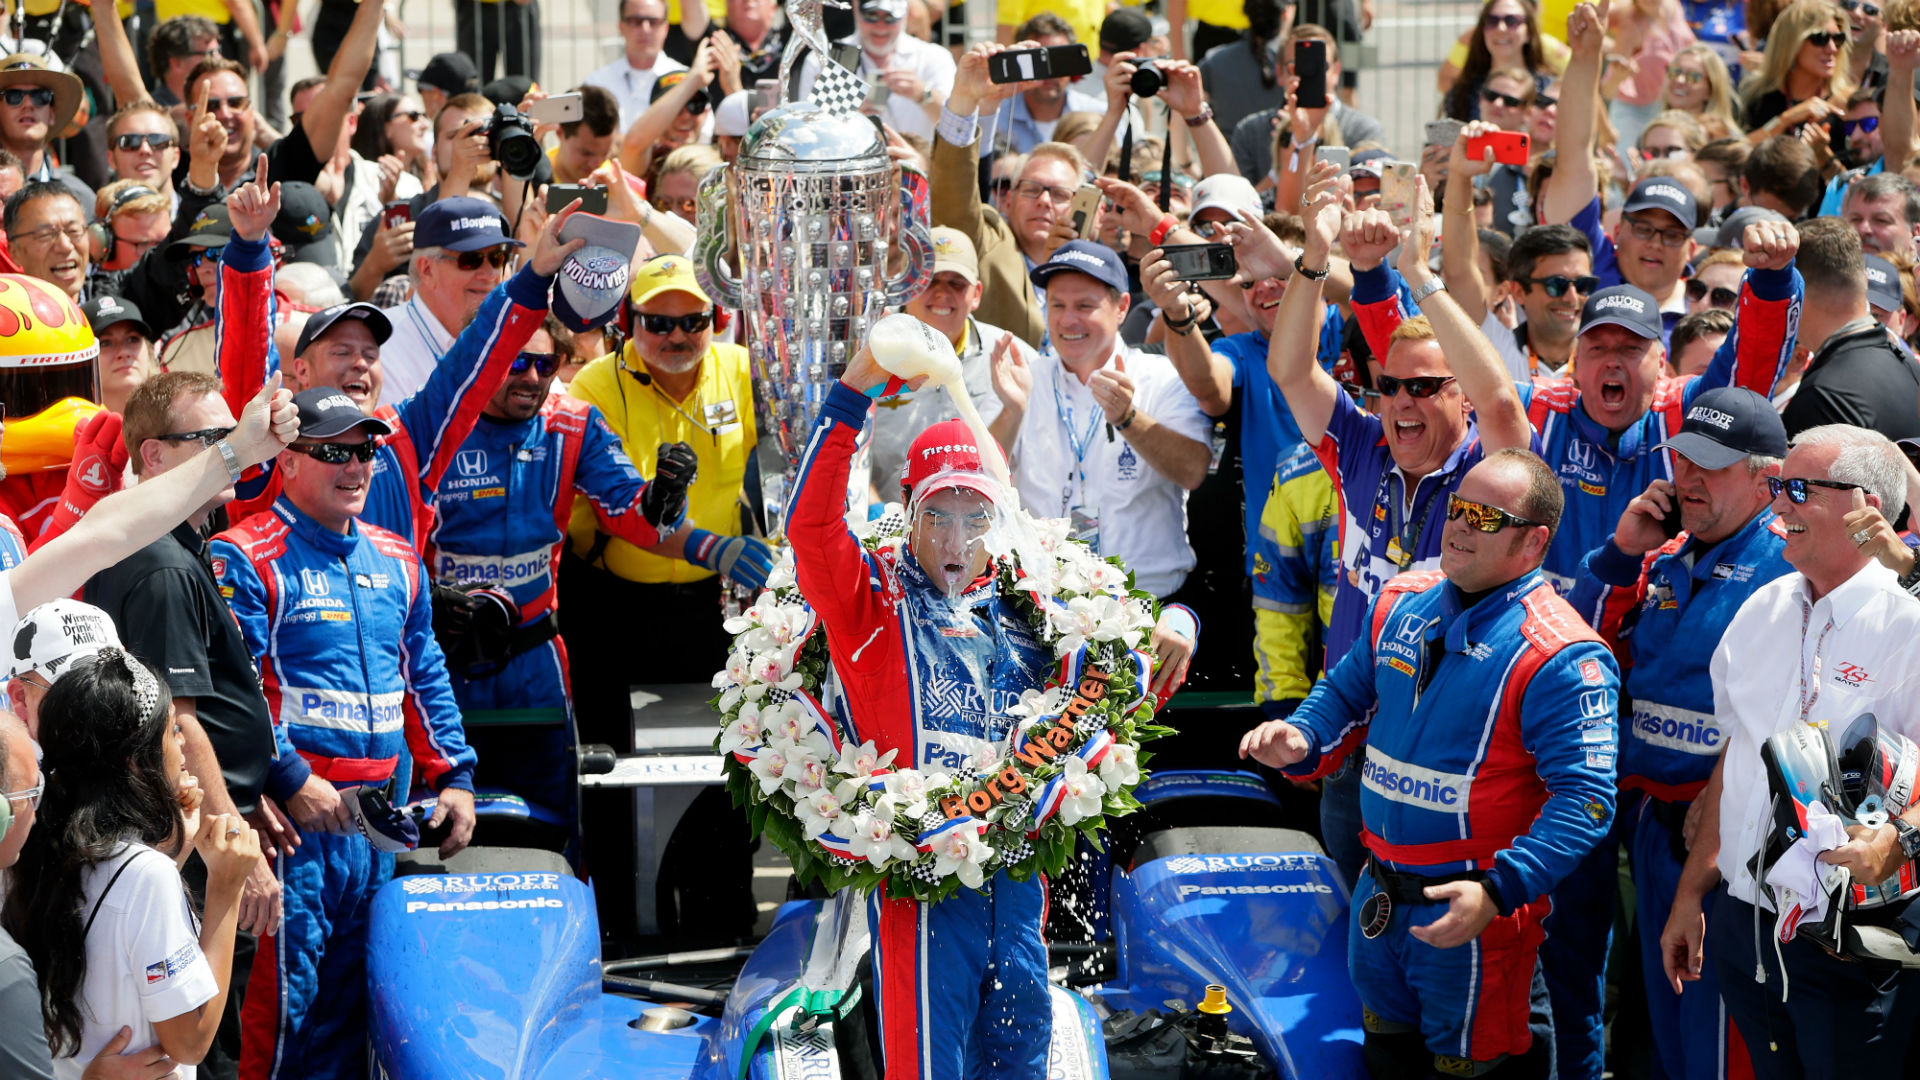 Indy 500 Wallet Payout Breakdown: How Much Prize Money Does The Winner Get In 2021?